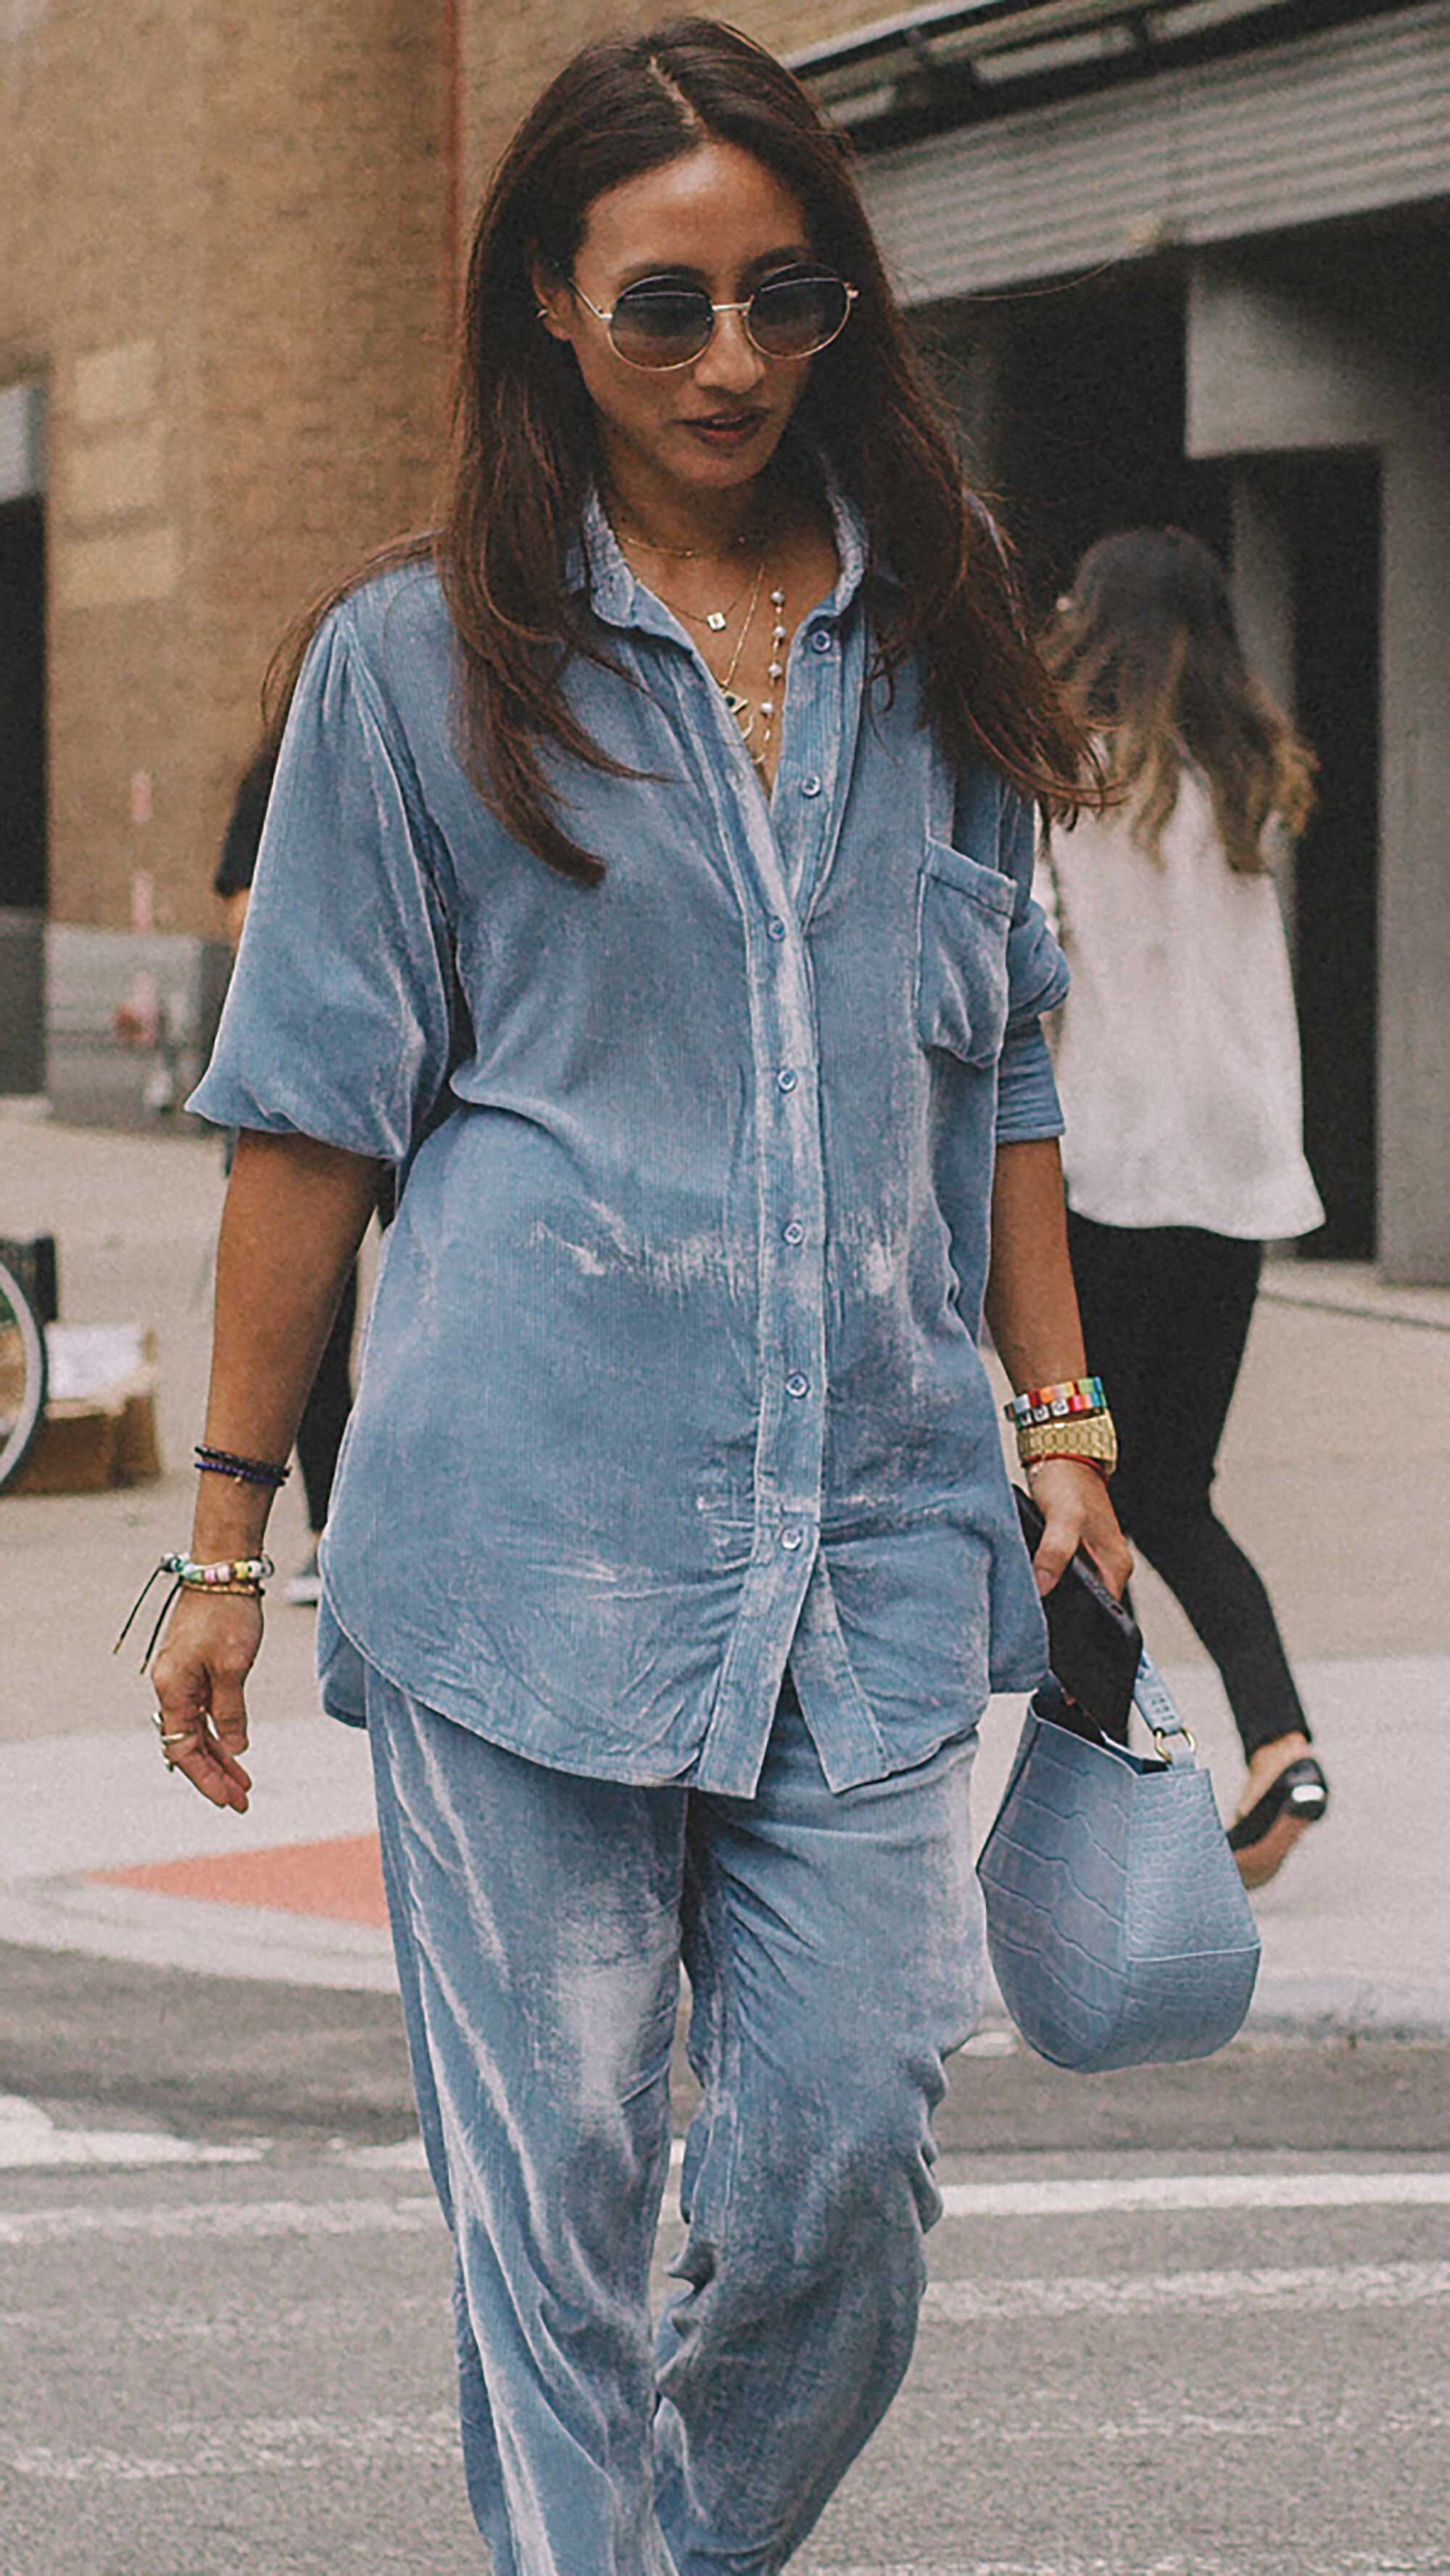 Best outfits of New York Fashion Week street style -42.jpg